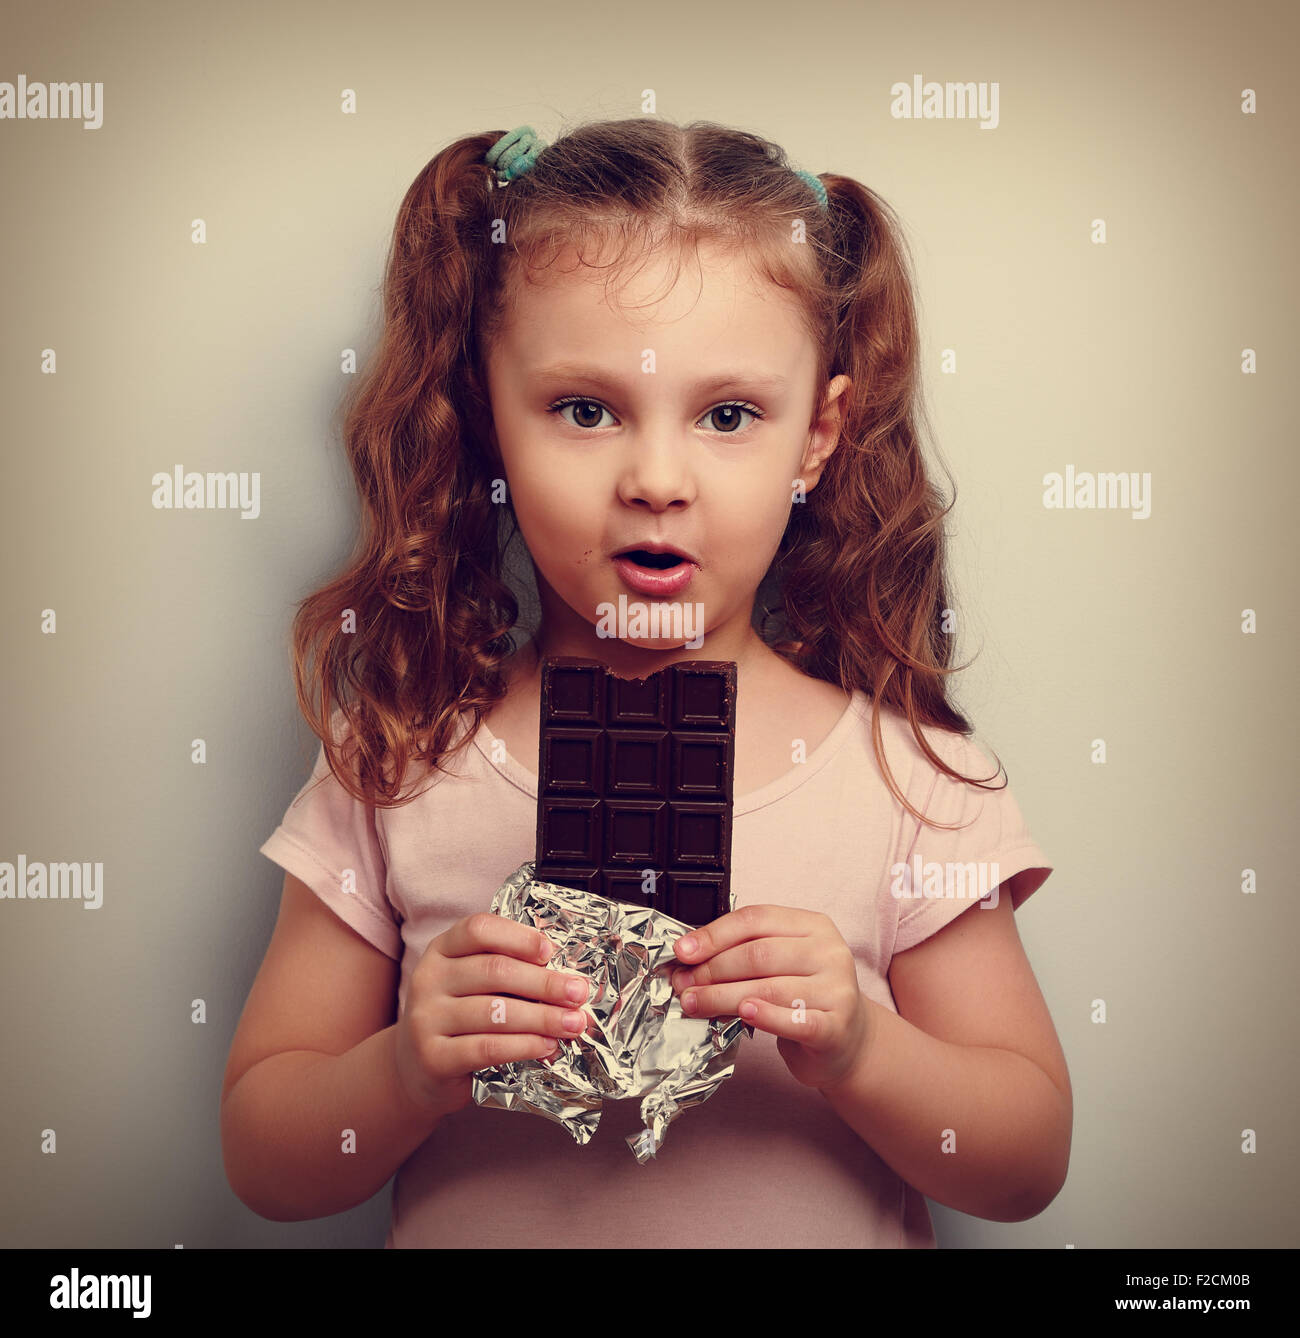 Vintage Looking Fan Child Eating Chocolate Vintage Stock Photos And Child Eating